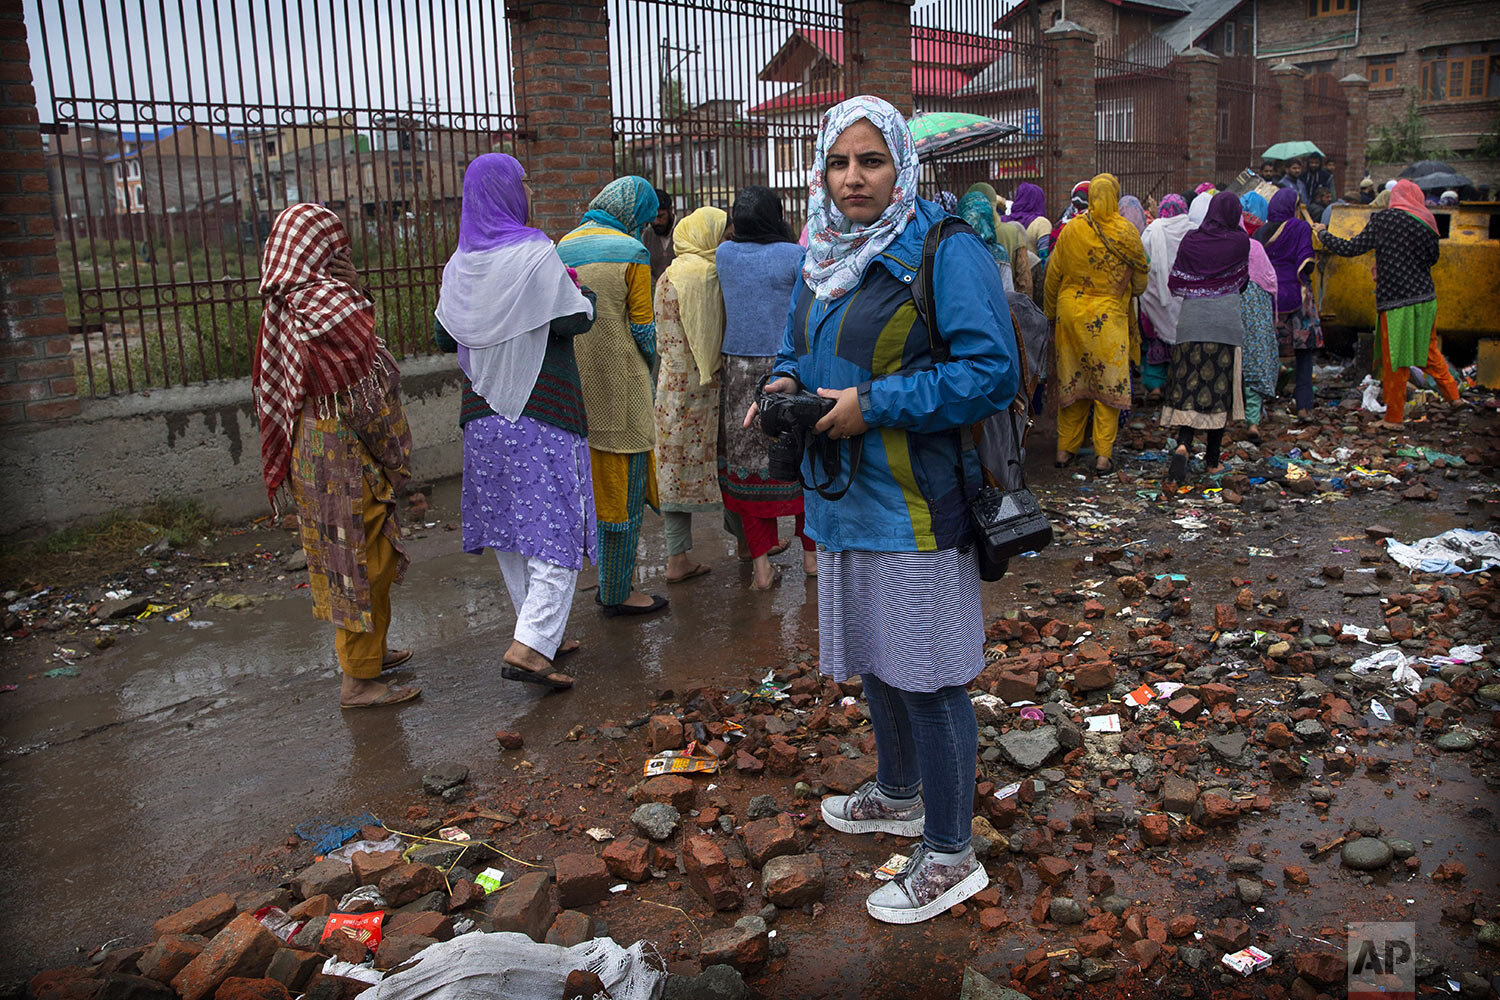 Photojournalist Masrat Zahra stands for a photograph during a protest on the outskirts of Srinagar, Indian controlled Kashmir, Friday, Oct. 4, 2019. (AP Photo/Dar Yasin)